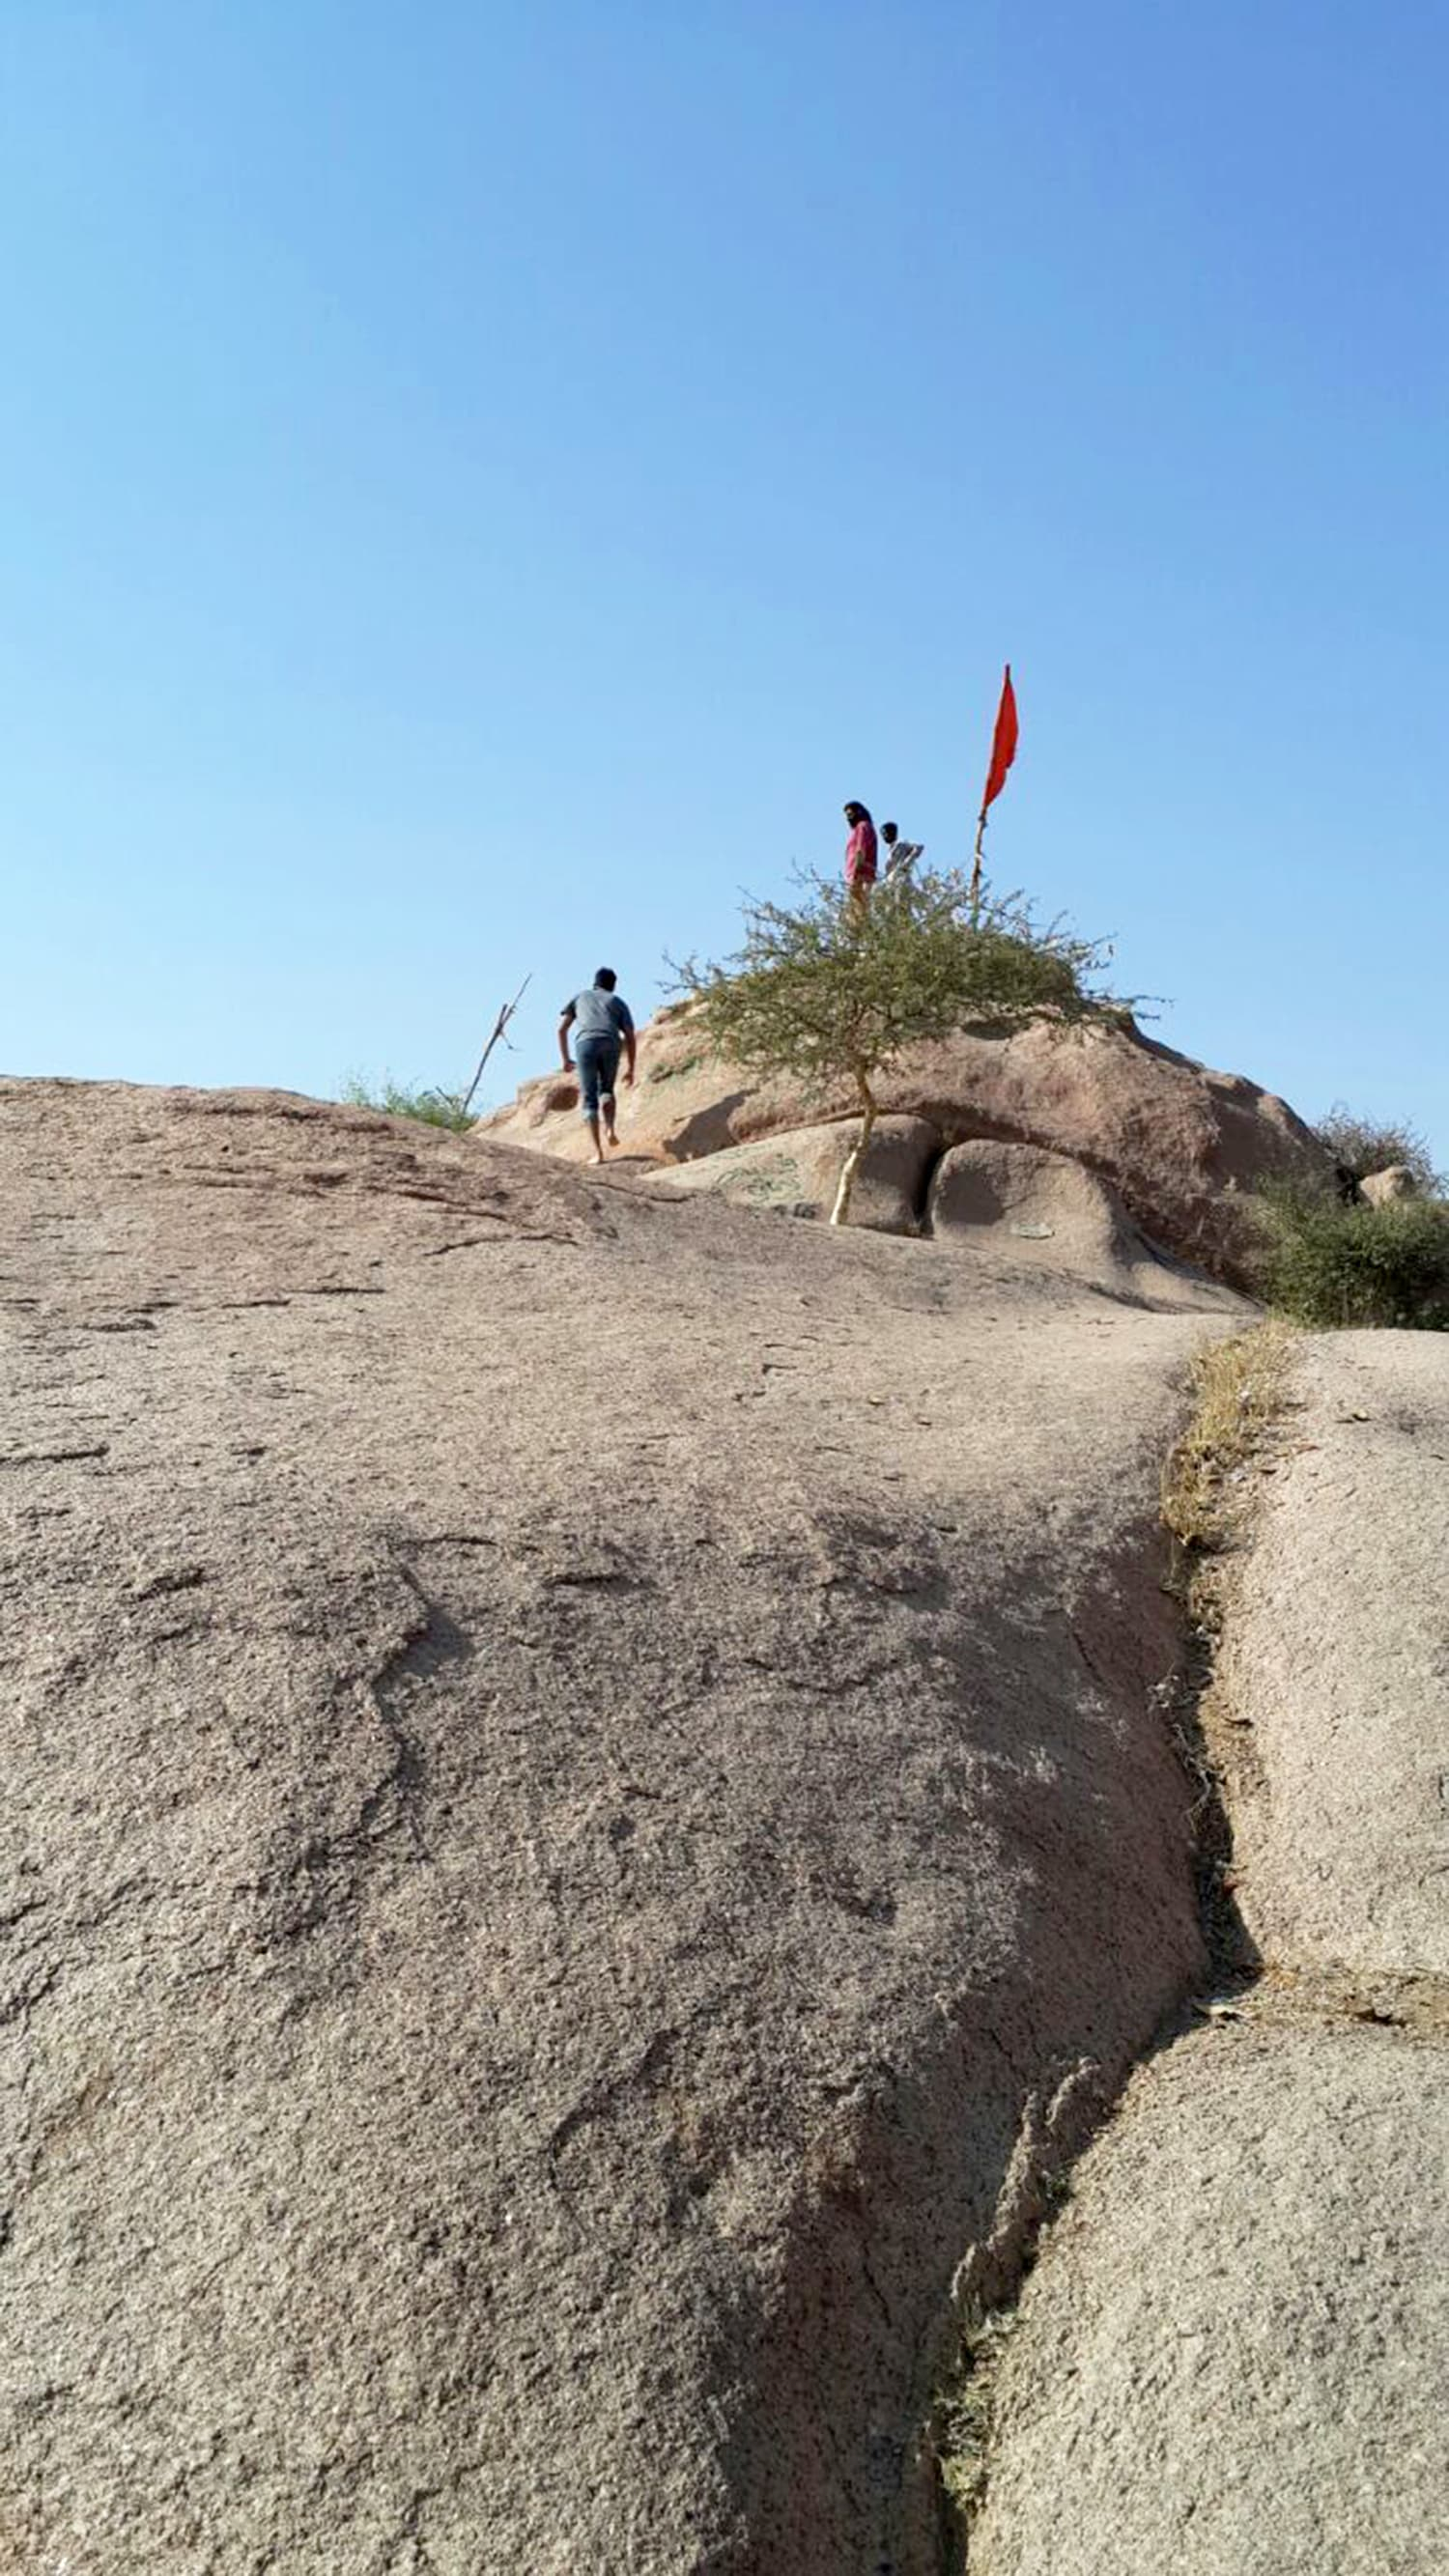 Taking the side route to the Kali temple, from the lower rocks.